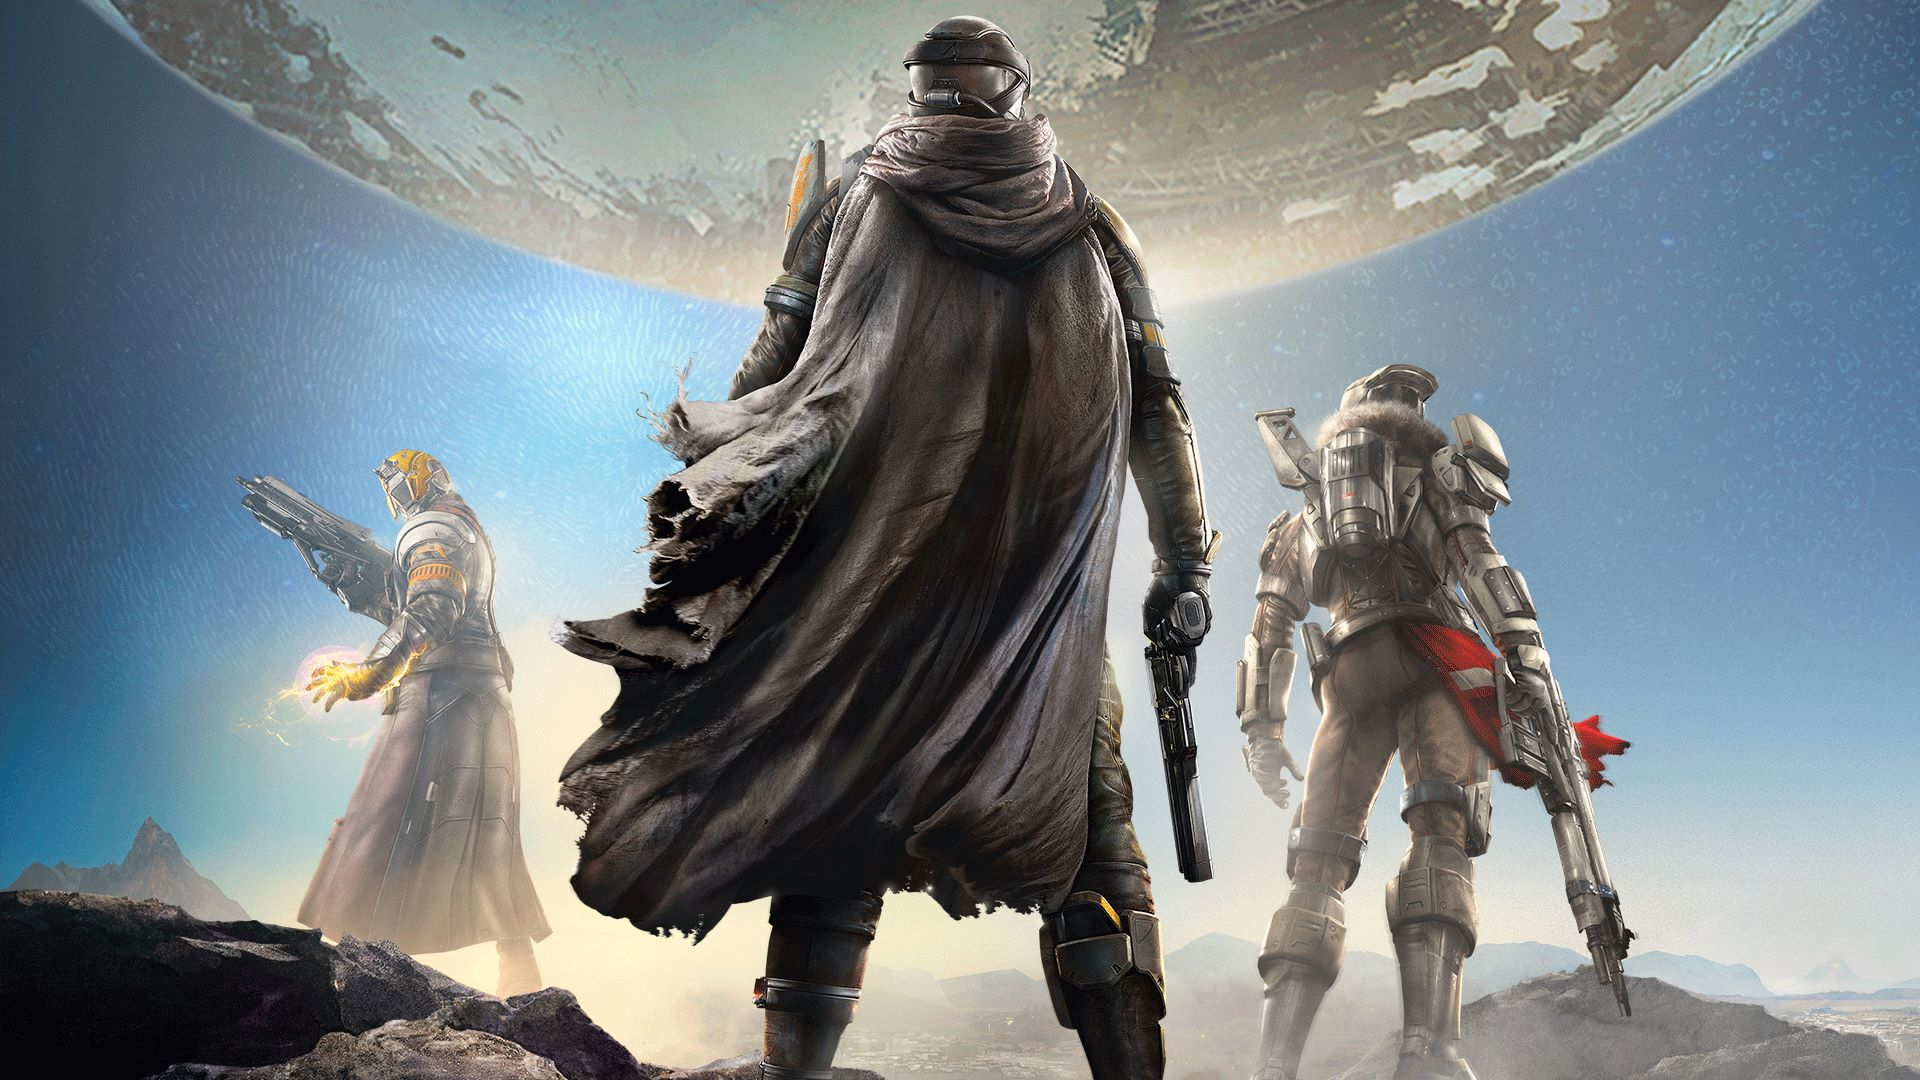 Sweeping, epic, and uneven… - Bungie's long-awaited original creation after leaving Halo behind is fun and ambitious, but marred by a confusing story and basic objective design.